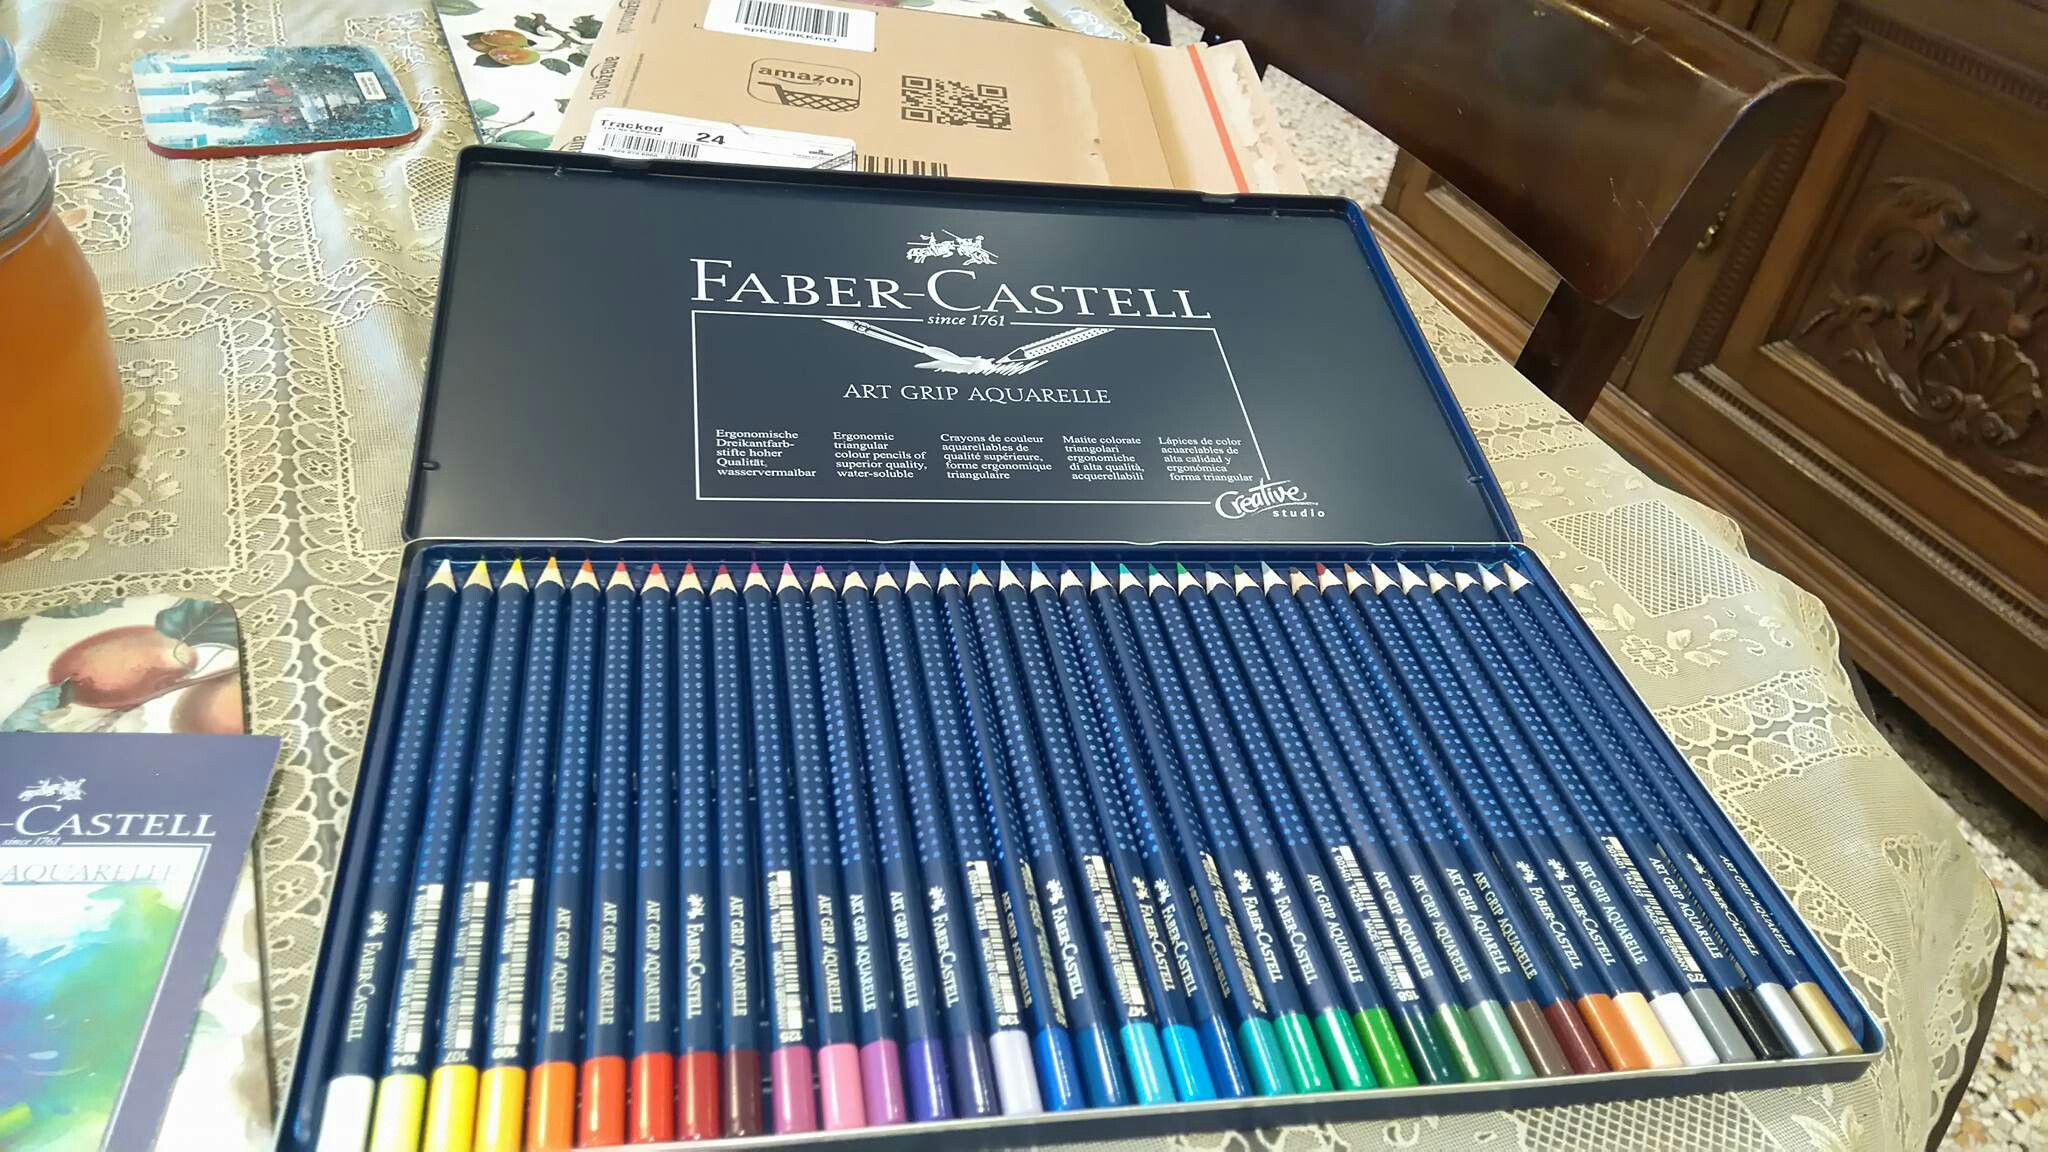 My New Faber Castell Watercolour Pencils 36 Set From Amazon Prime